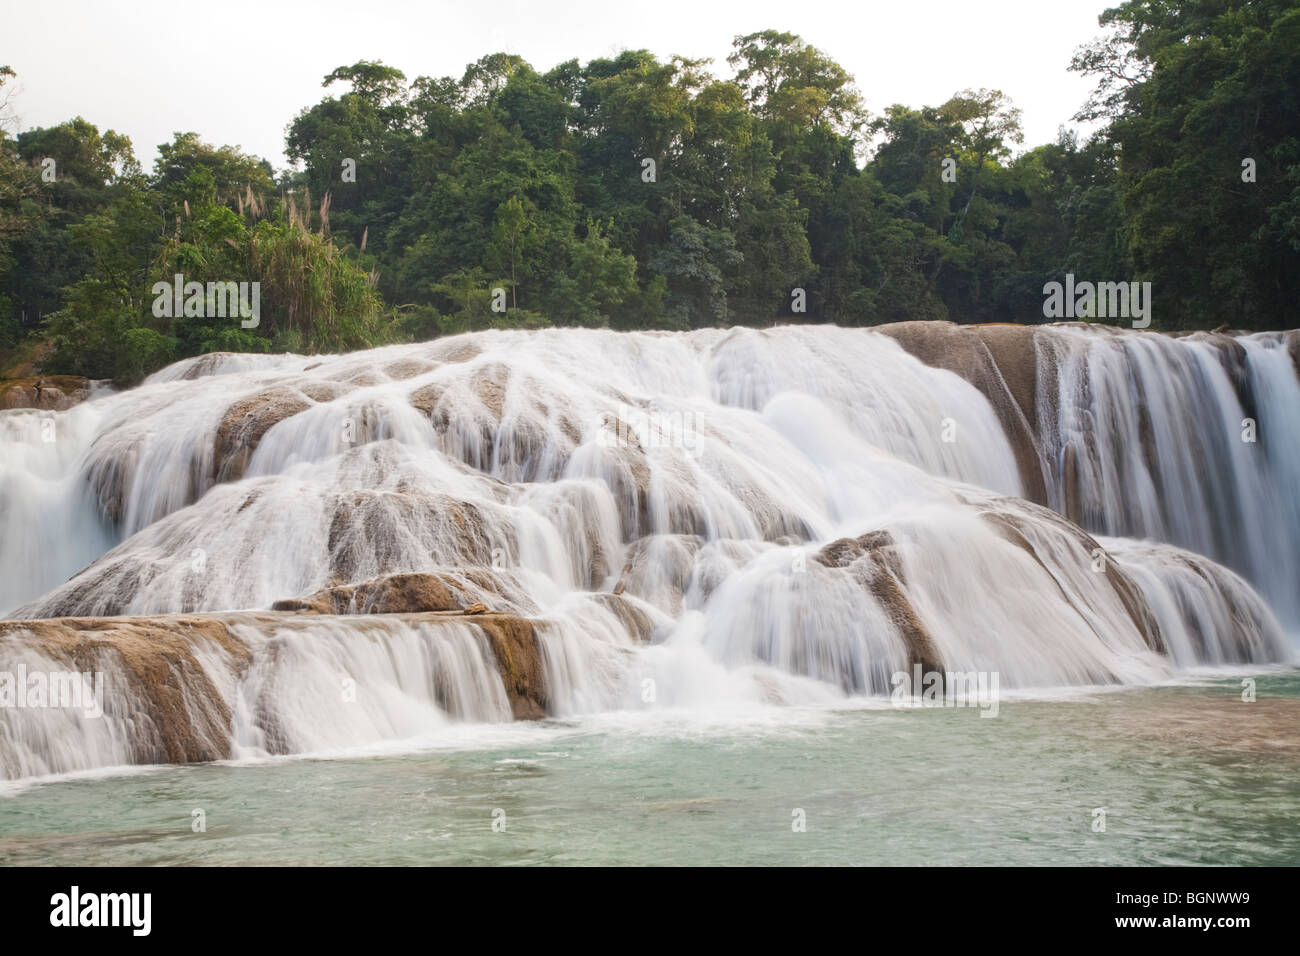 Agua Azul jungle waterfalls and rapids in Chiapas Mexico Stock Photo